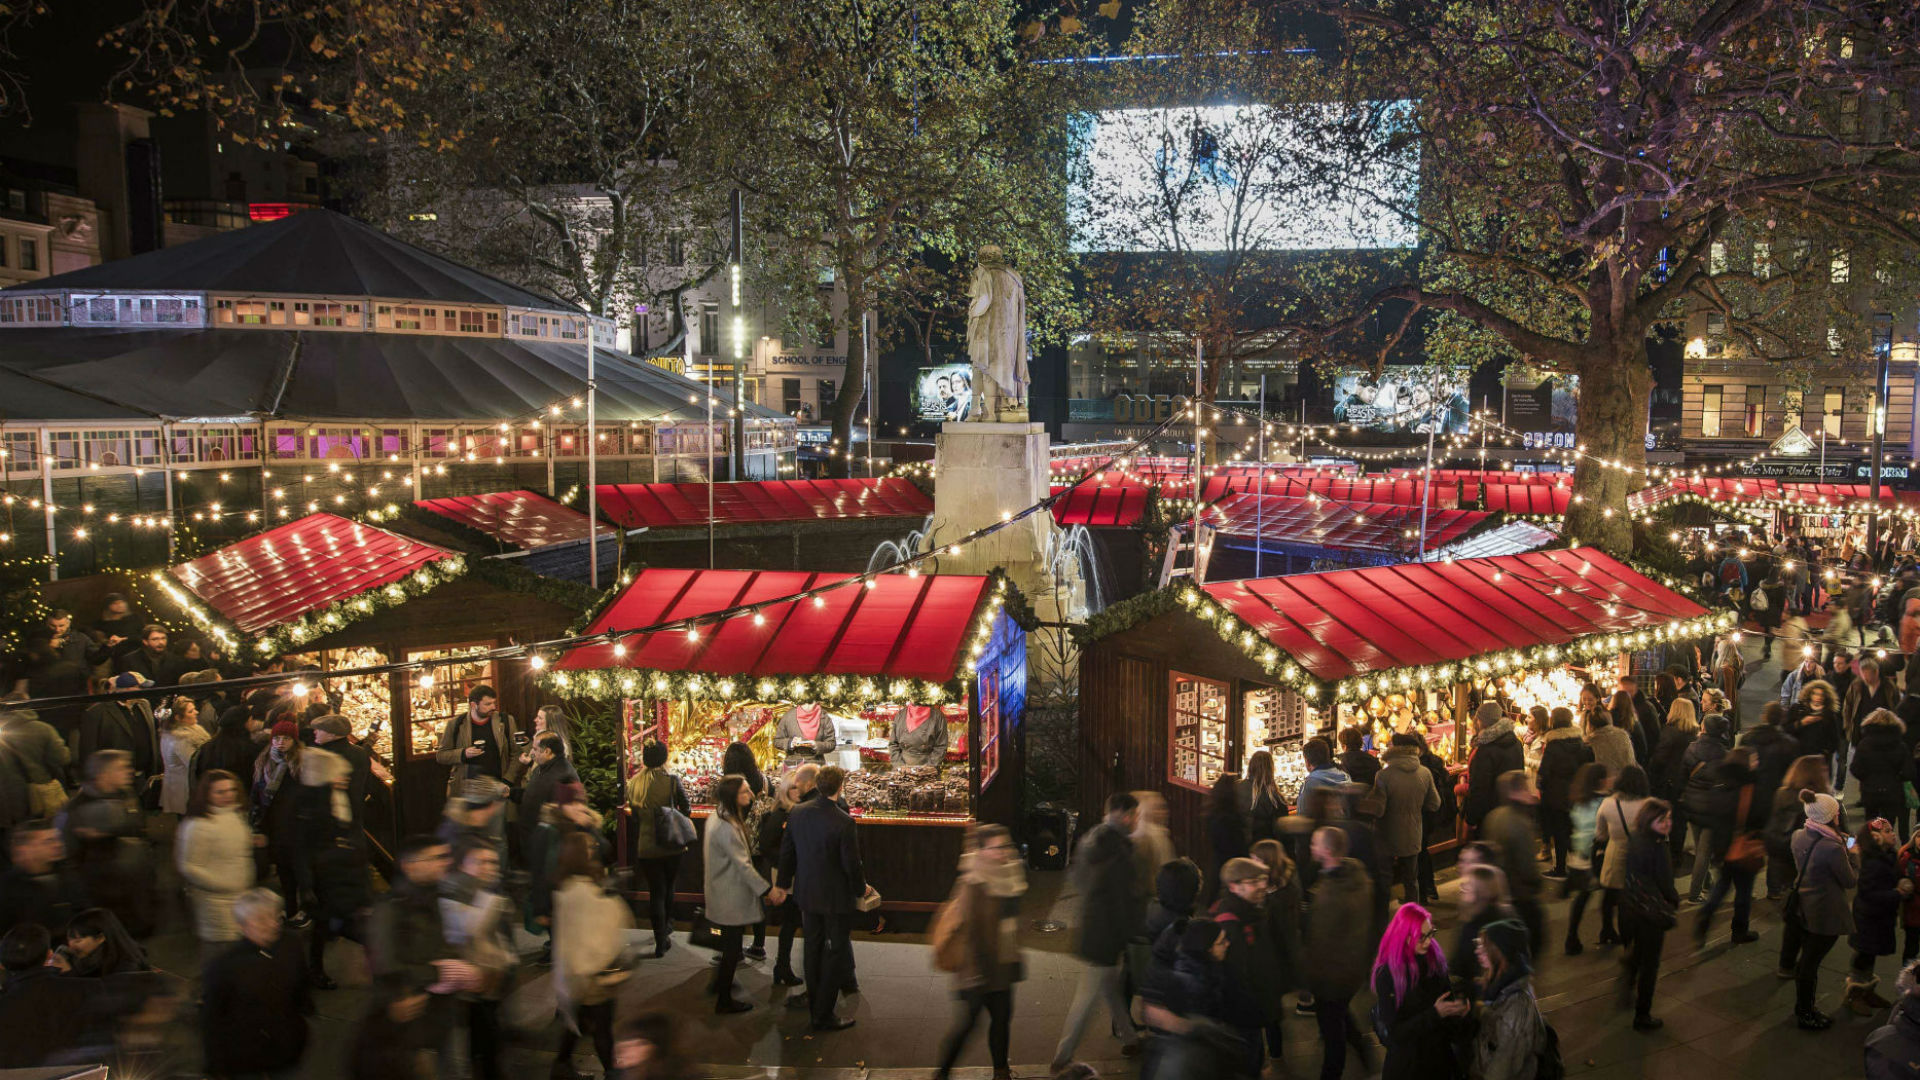 Market stalls at Christmas in Leicester Square